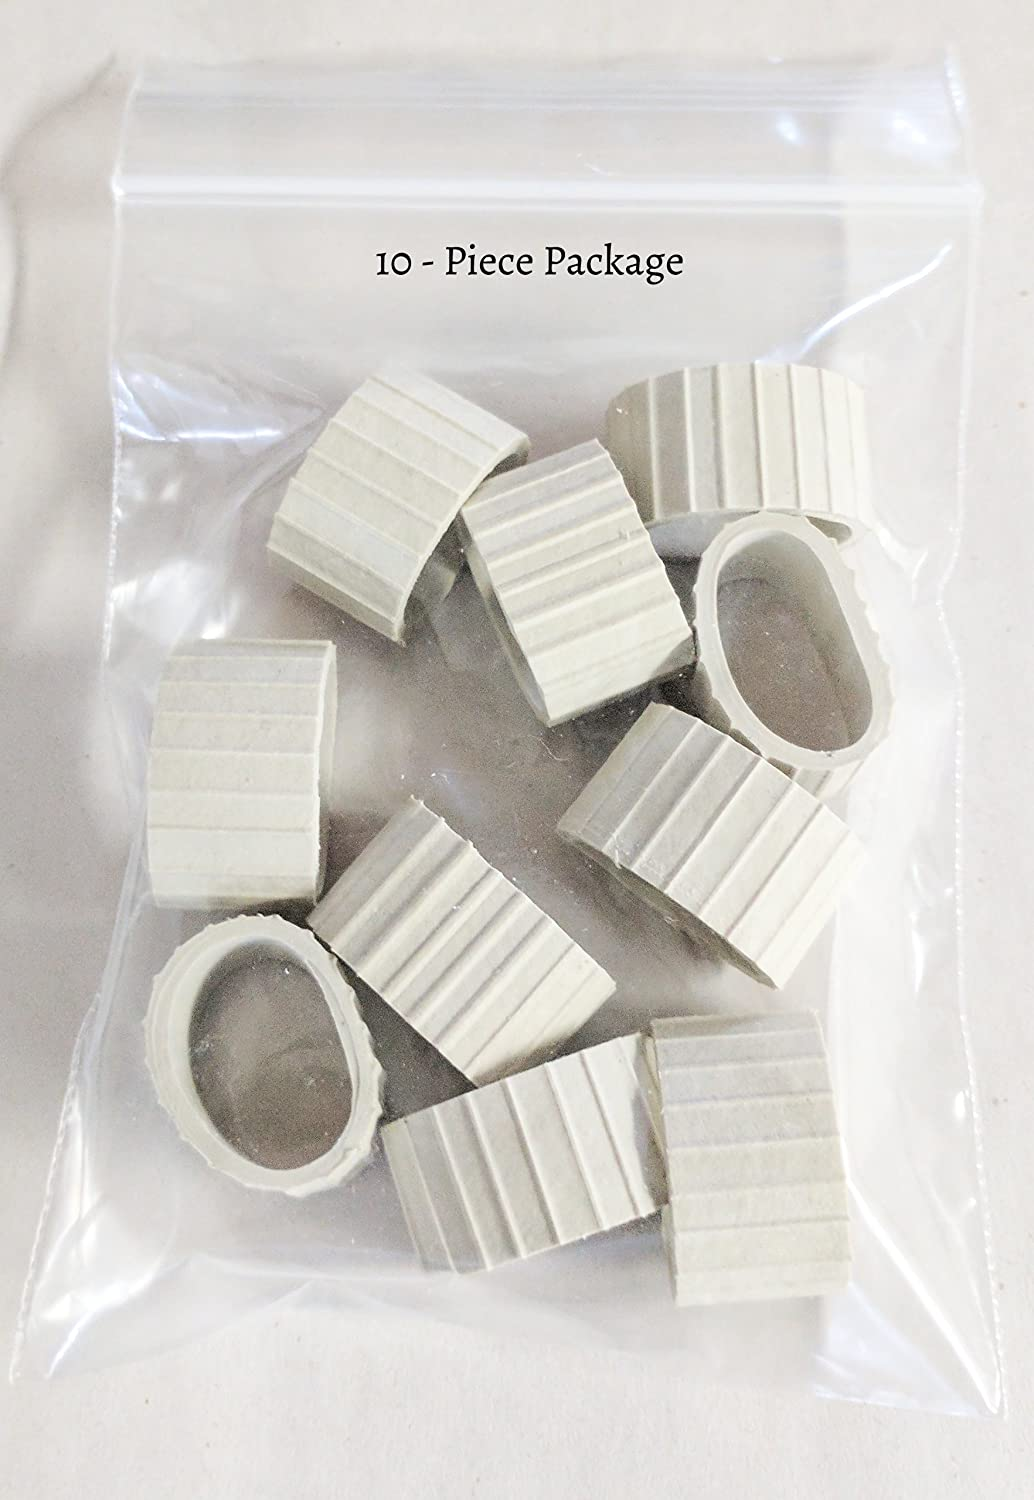 Rubber Gasket for Peg Candle Holder Candle-licious RG